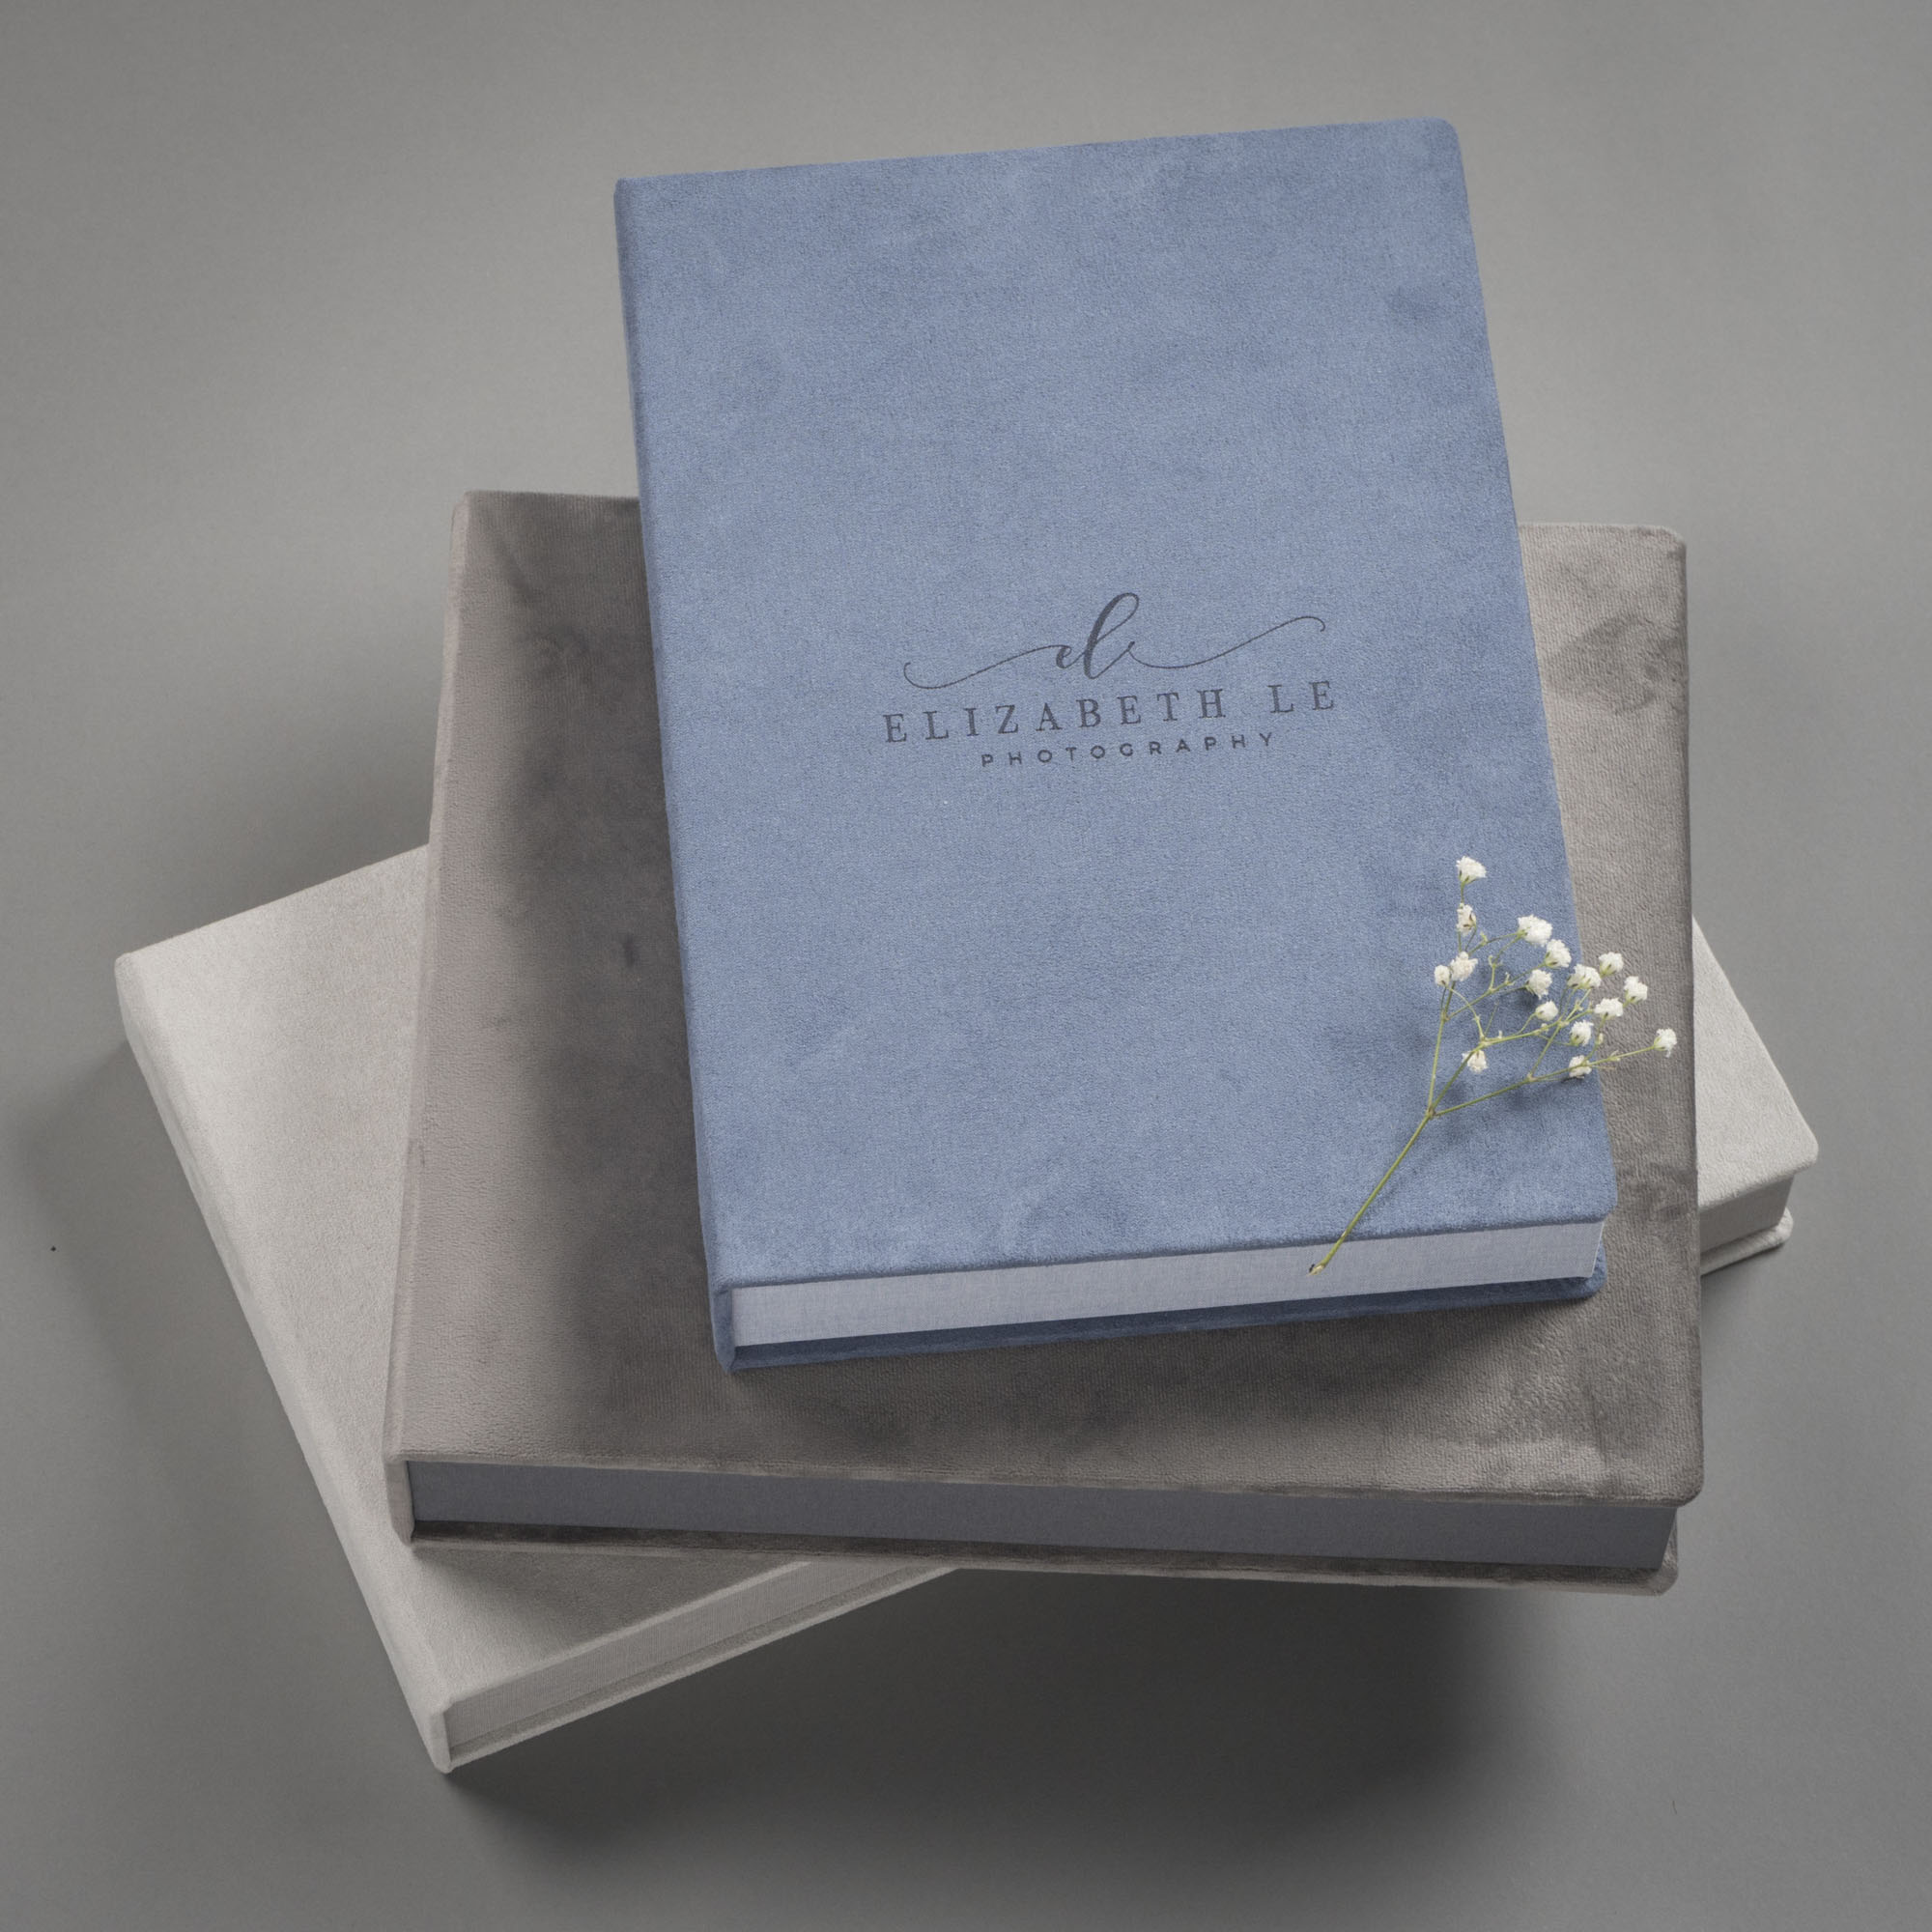 Professional Photography Albums in Velvet